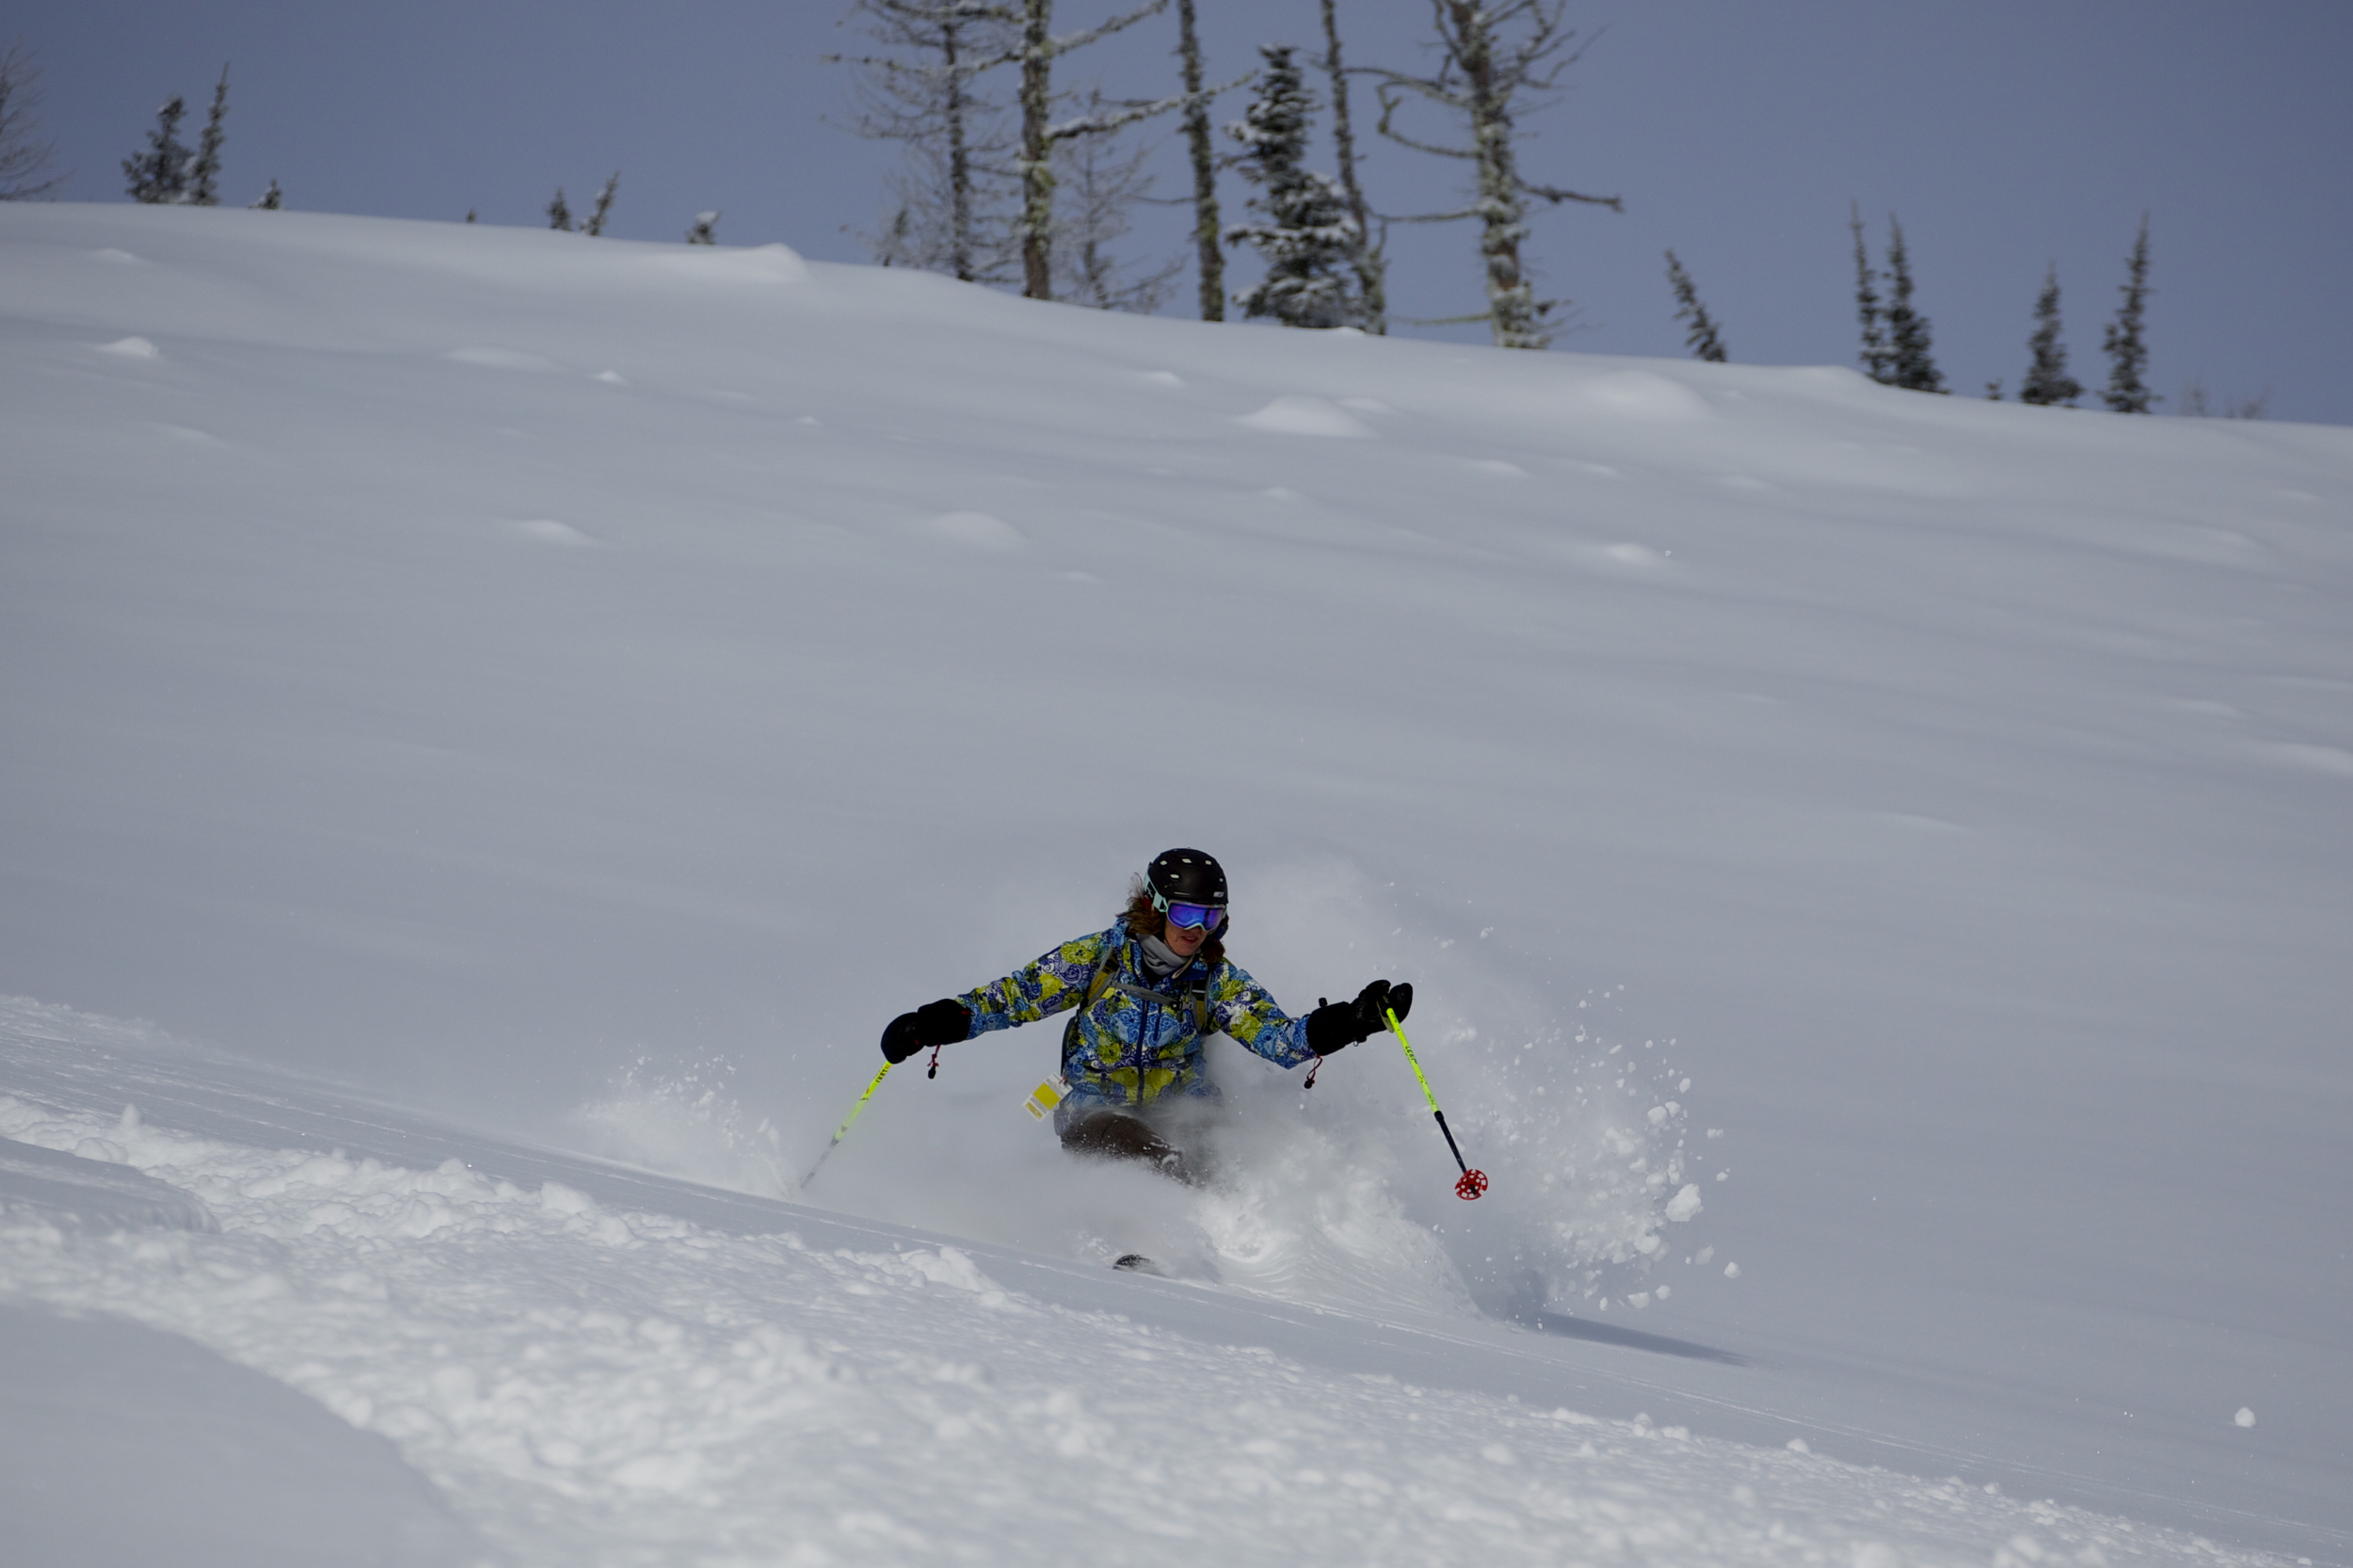 Cindy Luntley is an active outdoor enthusiast, equally at home on skis, on a bike or hiking in the mountains